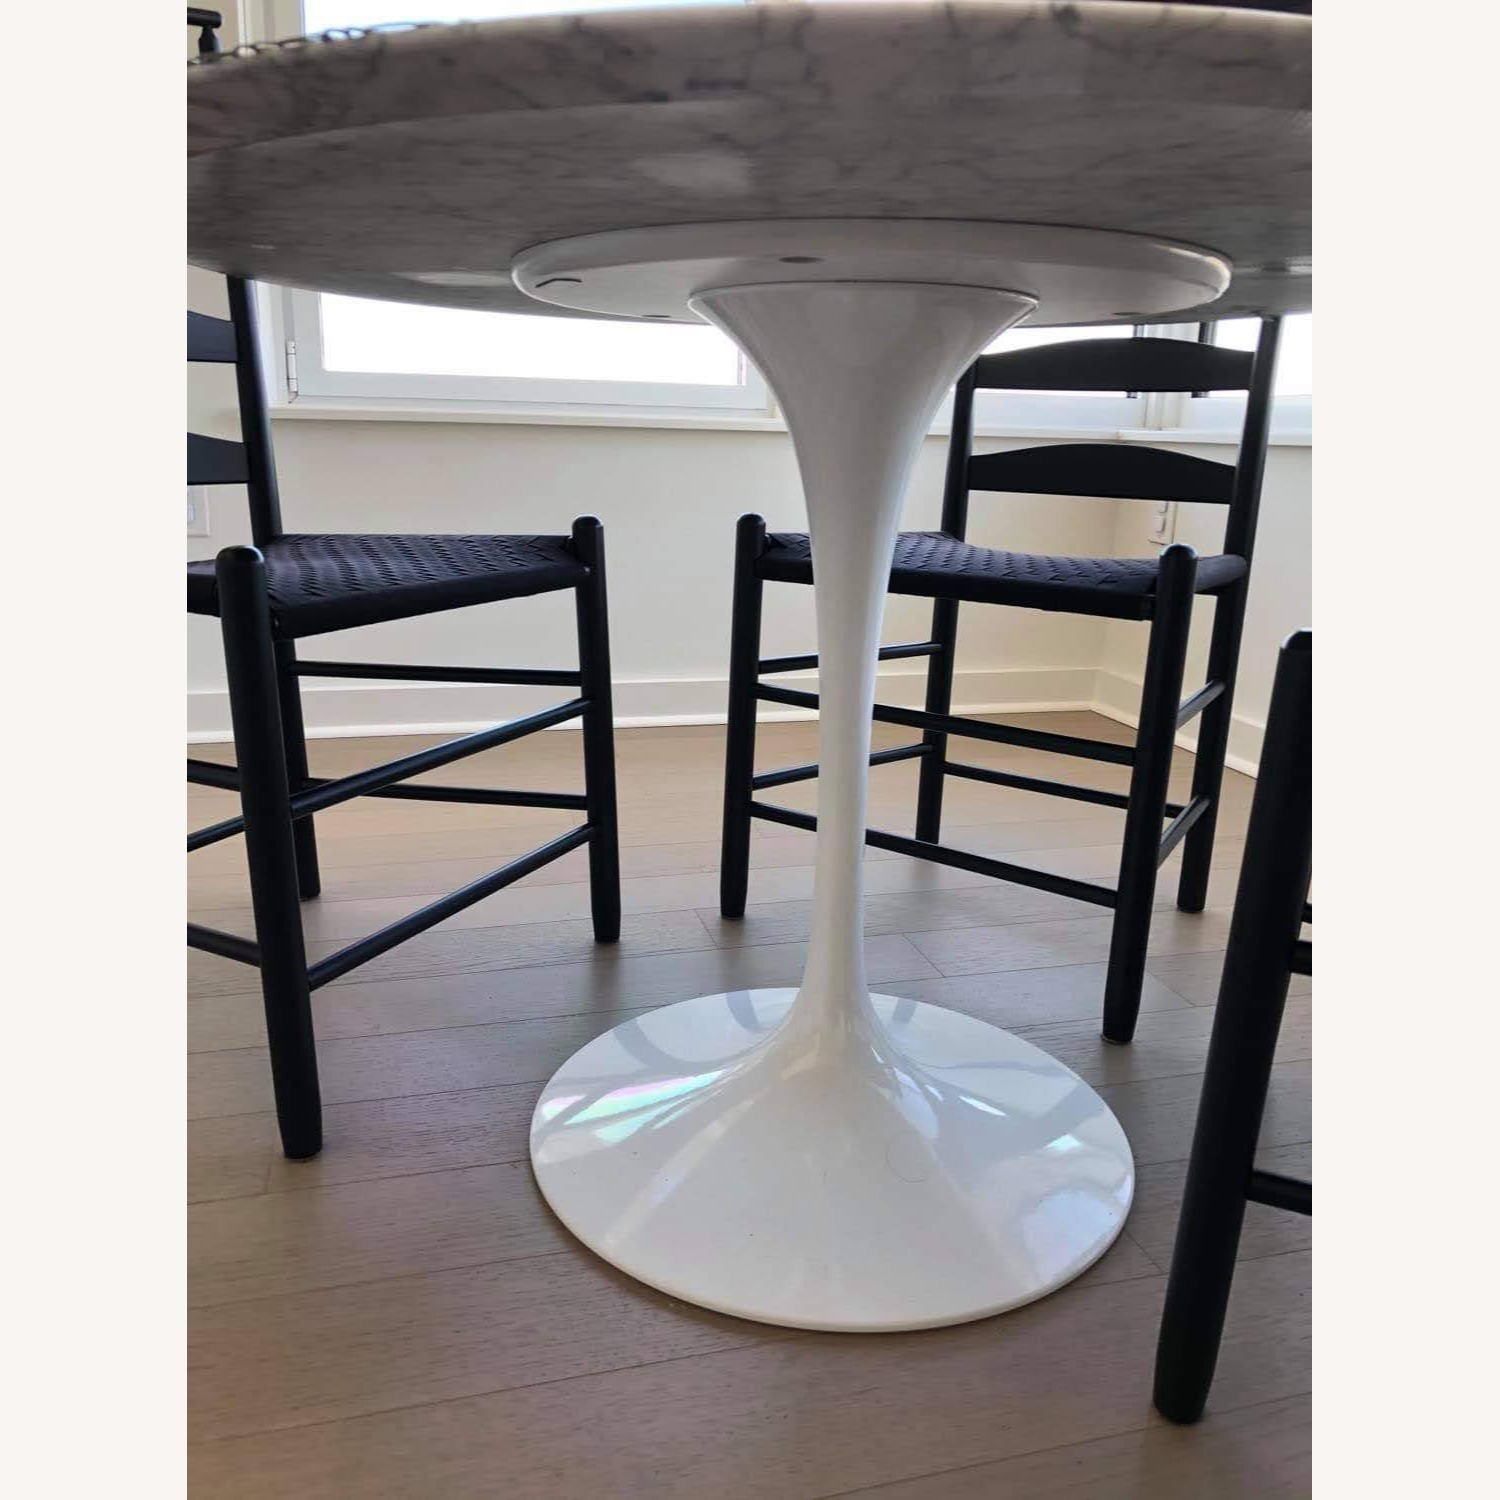 Knoll Saarinen Dining Table with Carrara Marble Top - image-6